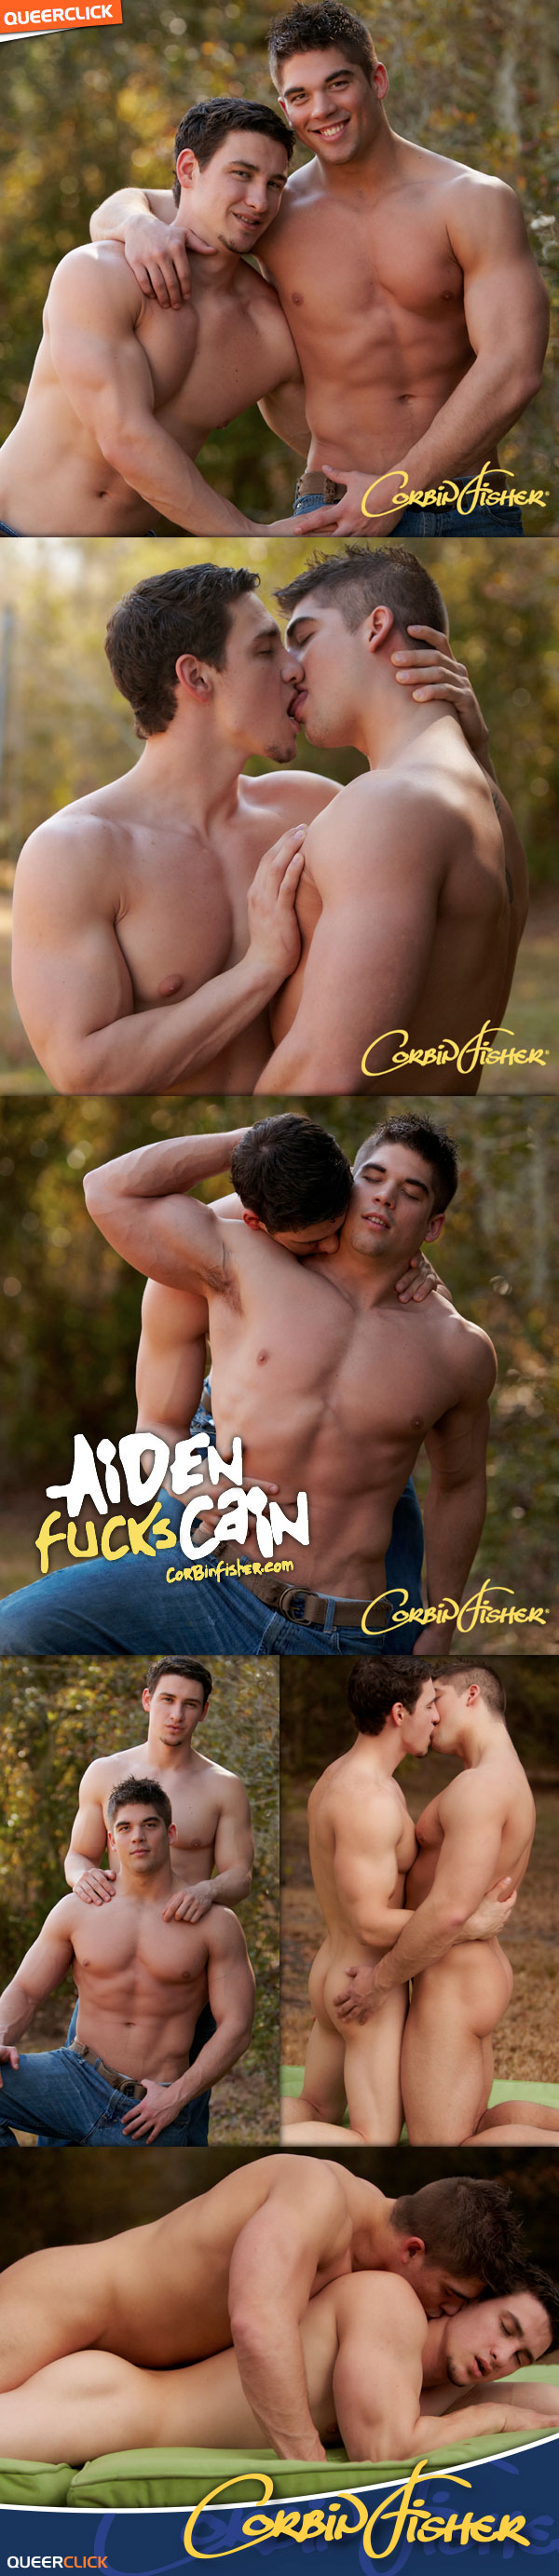 Corbin Fisher: Aiden Fucks Cain